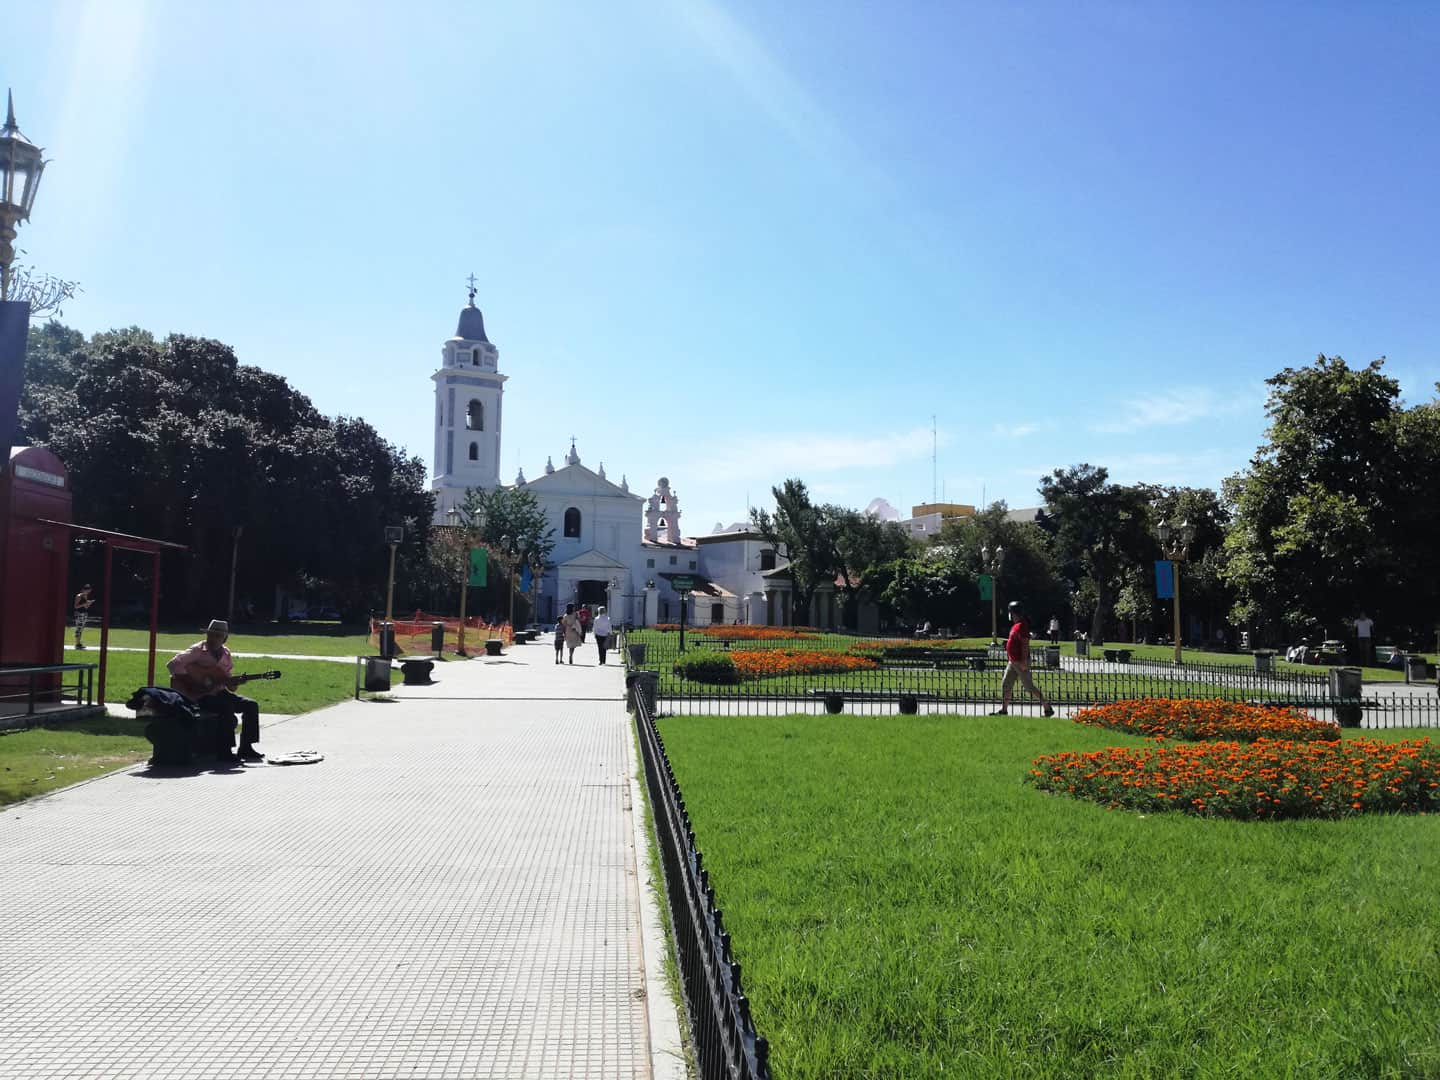 Del Pilar Church in Recoleta Area, just next to Recoleta Cemetery